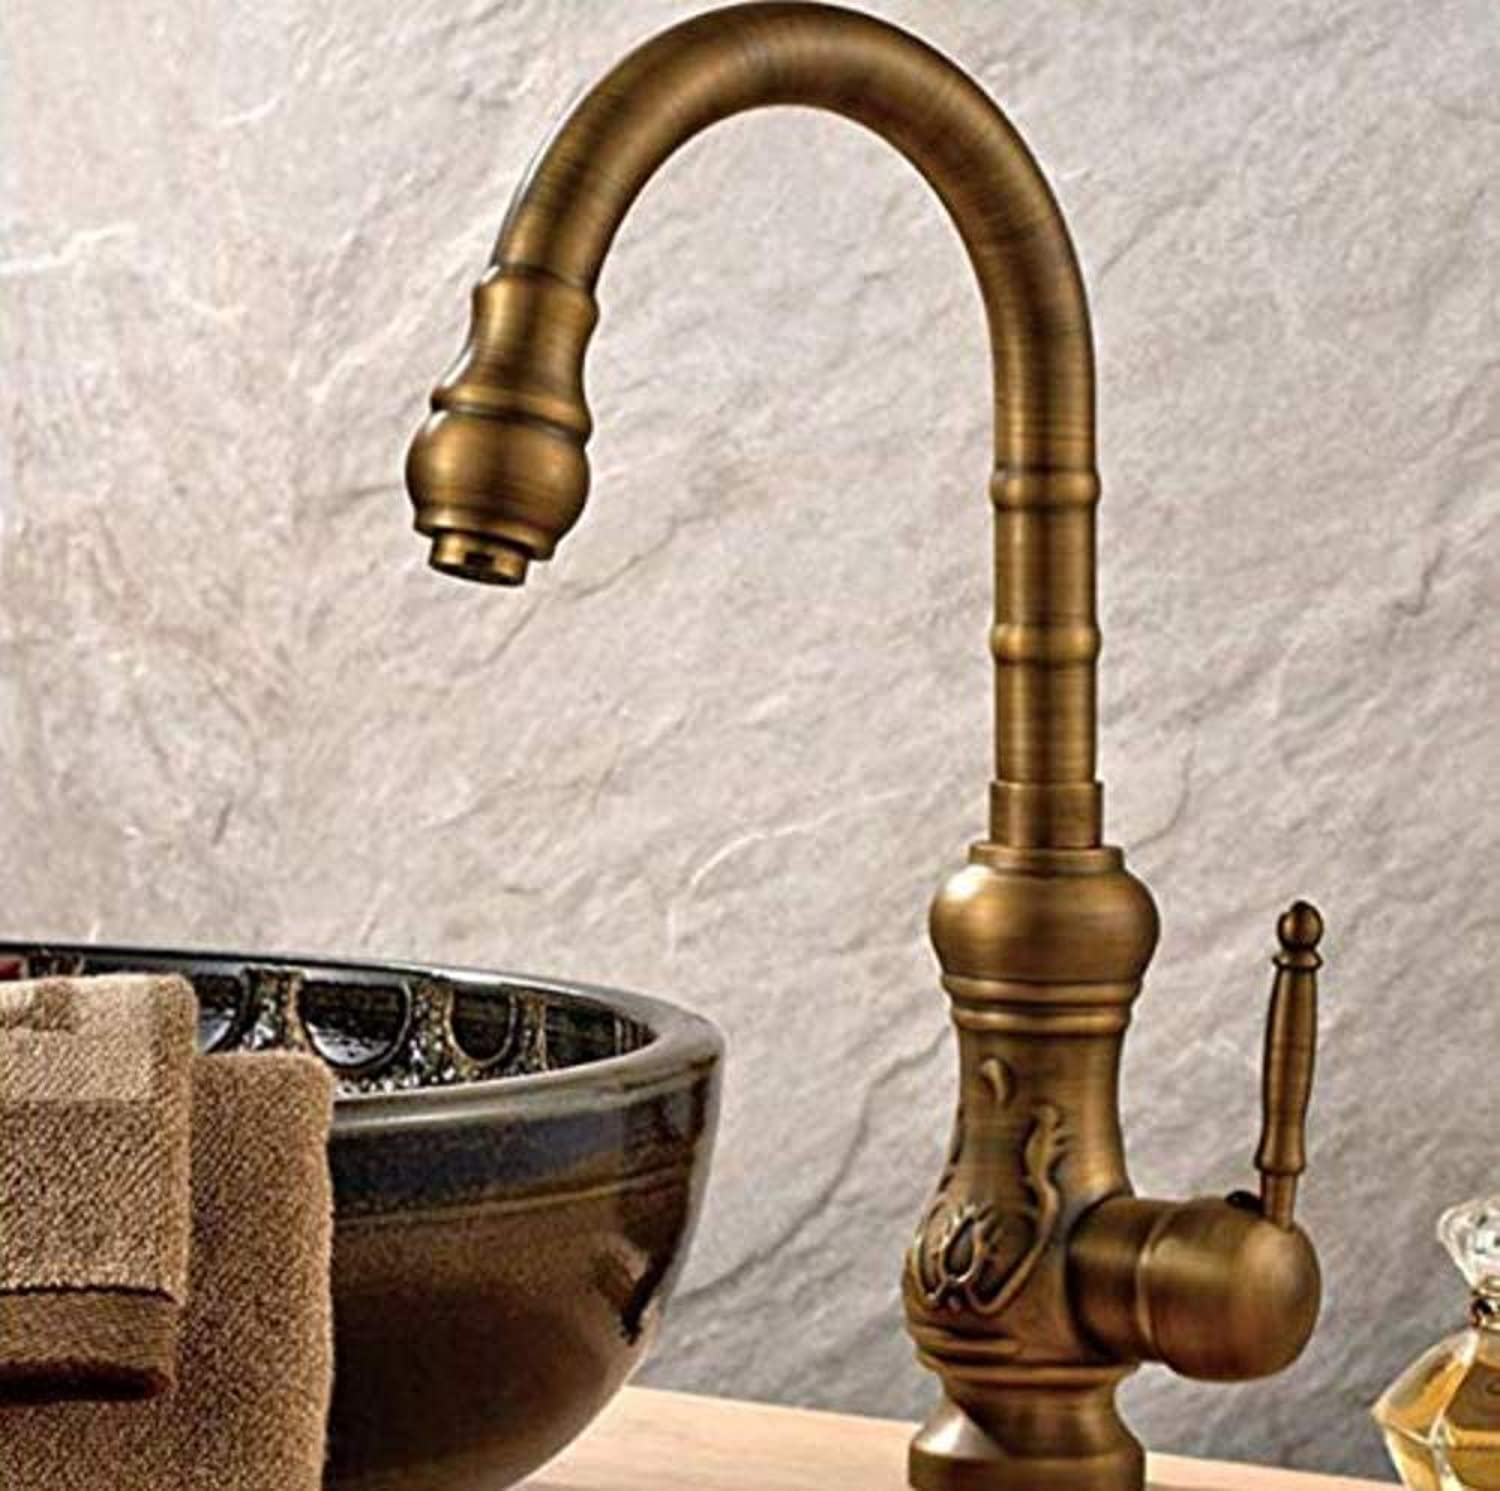 Bathroom Sink Tap Vintage Style Antique Single Handle Bathroom Basin Faucet Hot and Cold Water Sink Faucet Bathroom Vanity Faucet